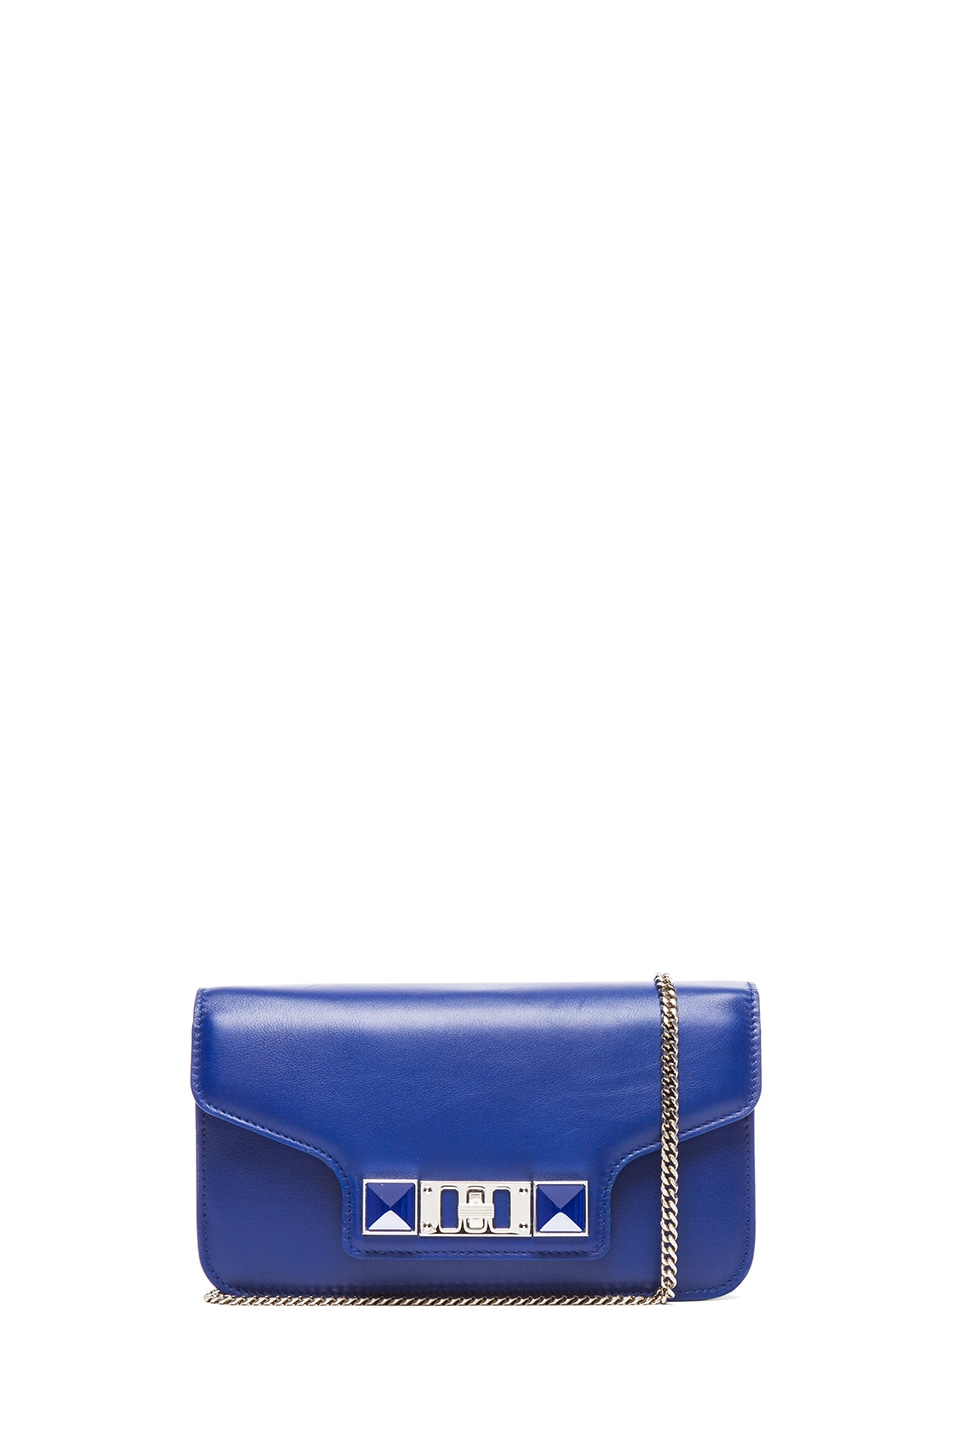 Image 1 of Proenza Schouler PS11 Smooth Calf Leather Chain Wallet in Royal Blue